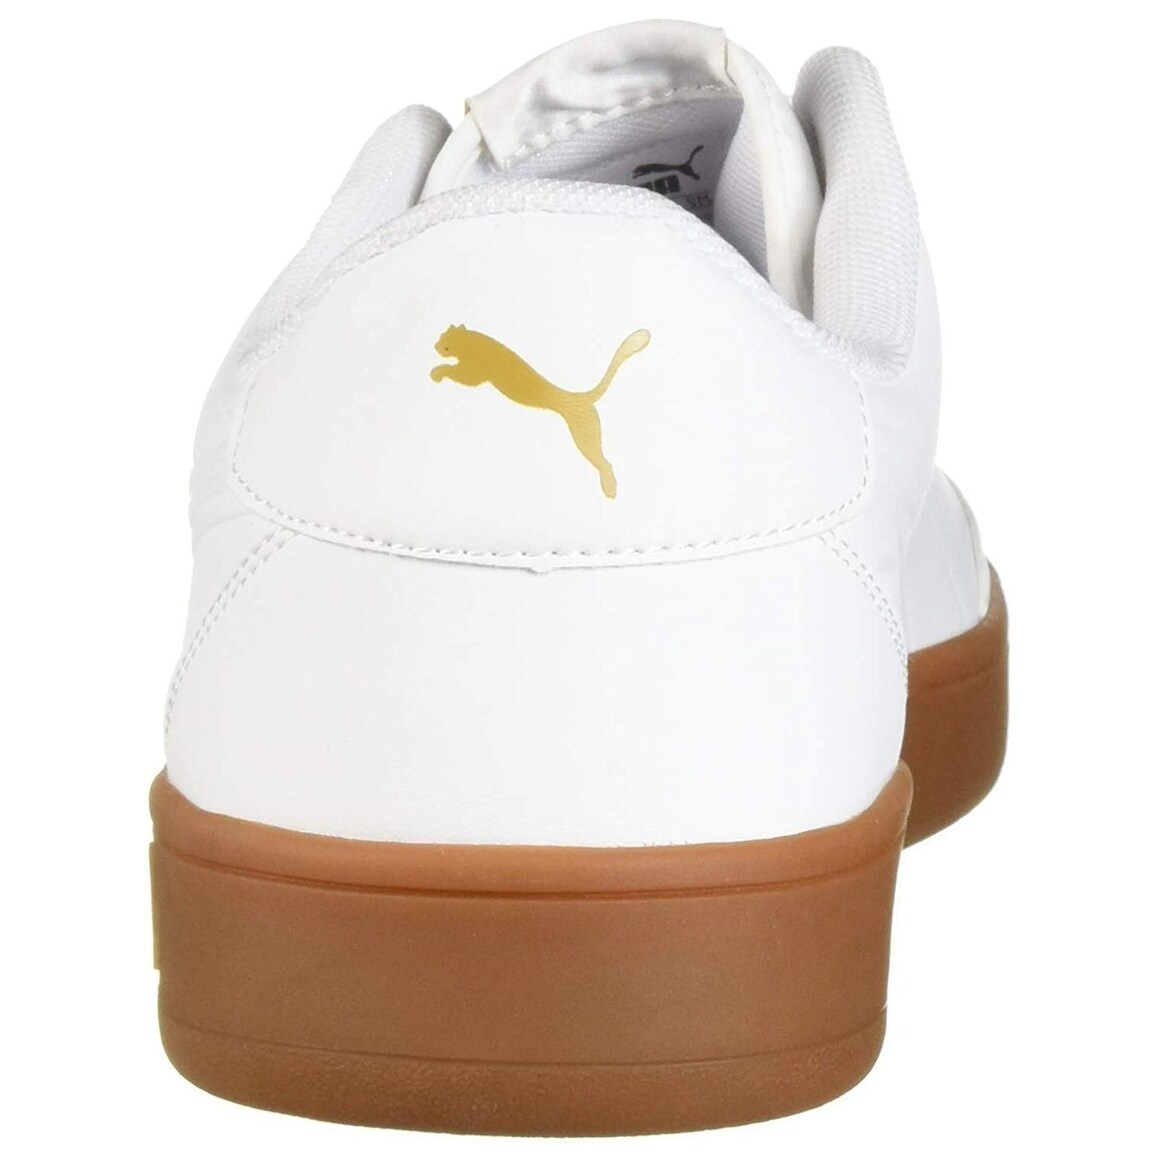 Shop PUMA Men s Court Breaker L Mono Sneaker - Free Shipping Today -  Overstock.com - 27032575 6328e53d2